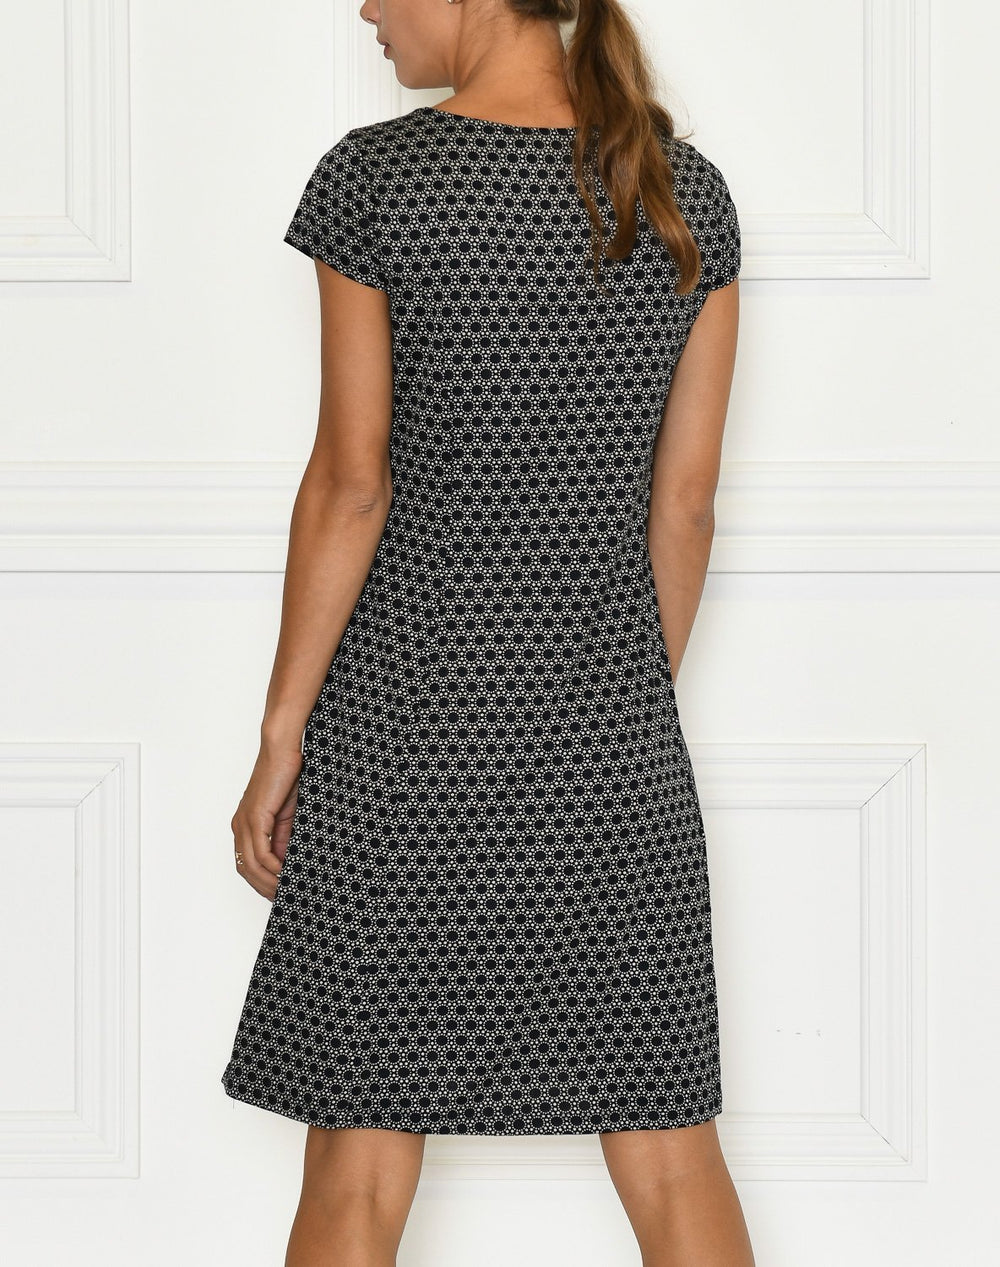 Ofelia Fiola dress print 2 navy - Online-Mode